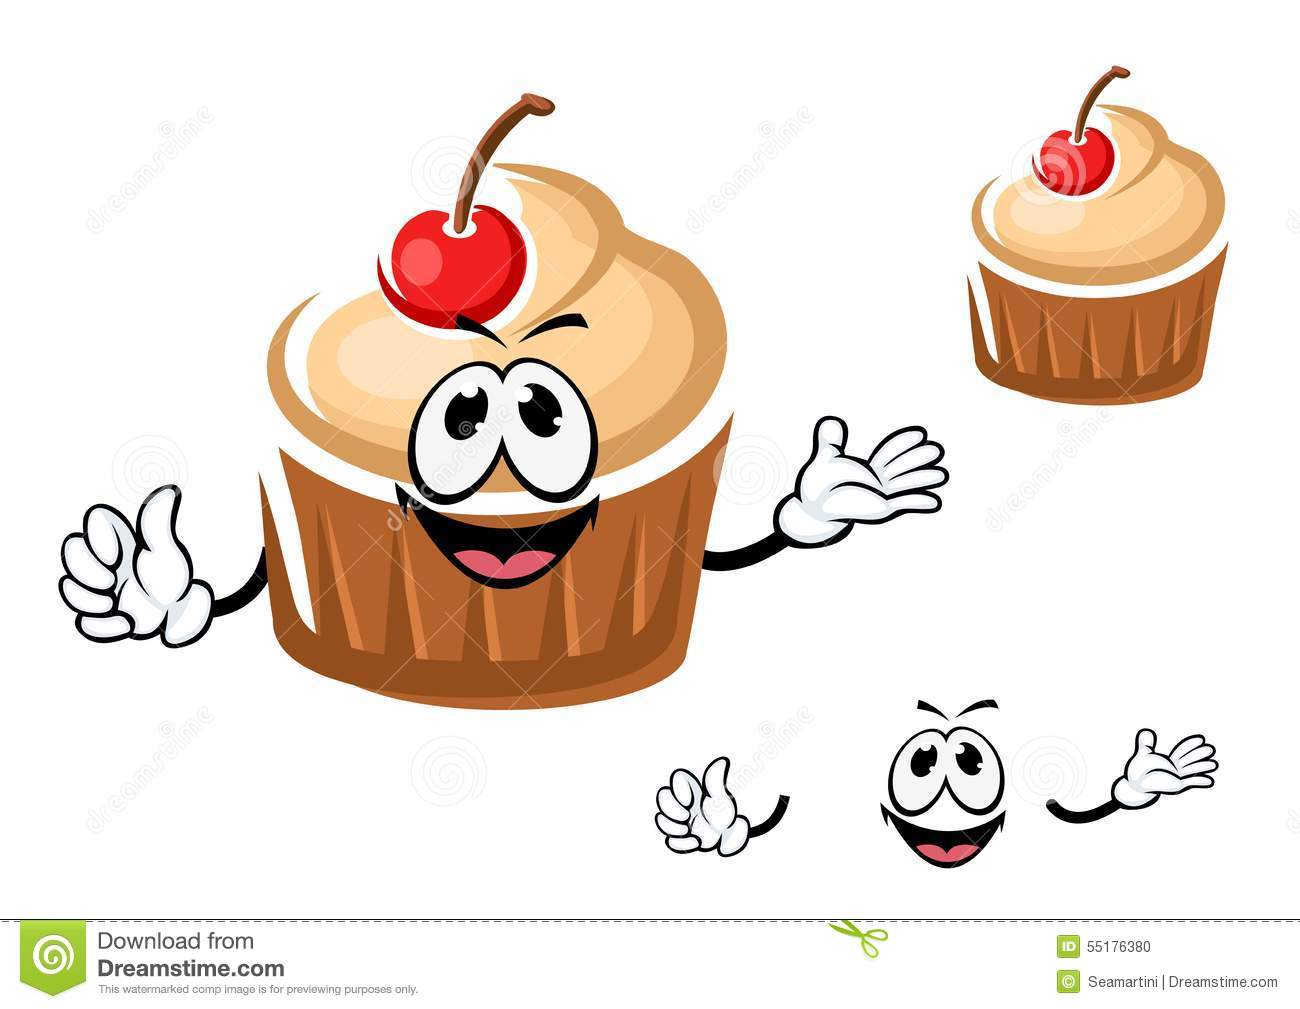 the character evaluation of cupcake brown Illustration of funny tasty cartoon cupcake character with green cream, chocolate chips and waffle rolls for pastry shop or holiday party design vector art, clipart add to likebox funny cartoon brown cupcake character with cute happy face and little hands, for bakery and pastry food design #39928211 add to likebox.